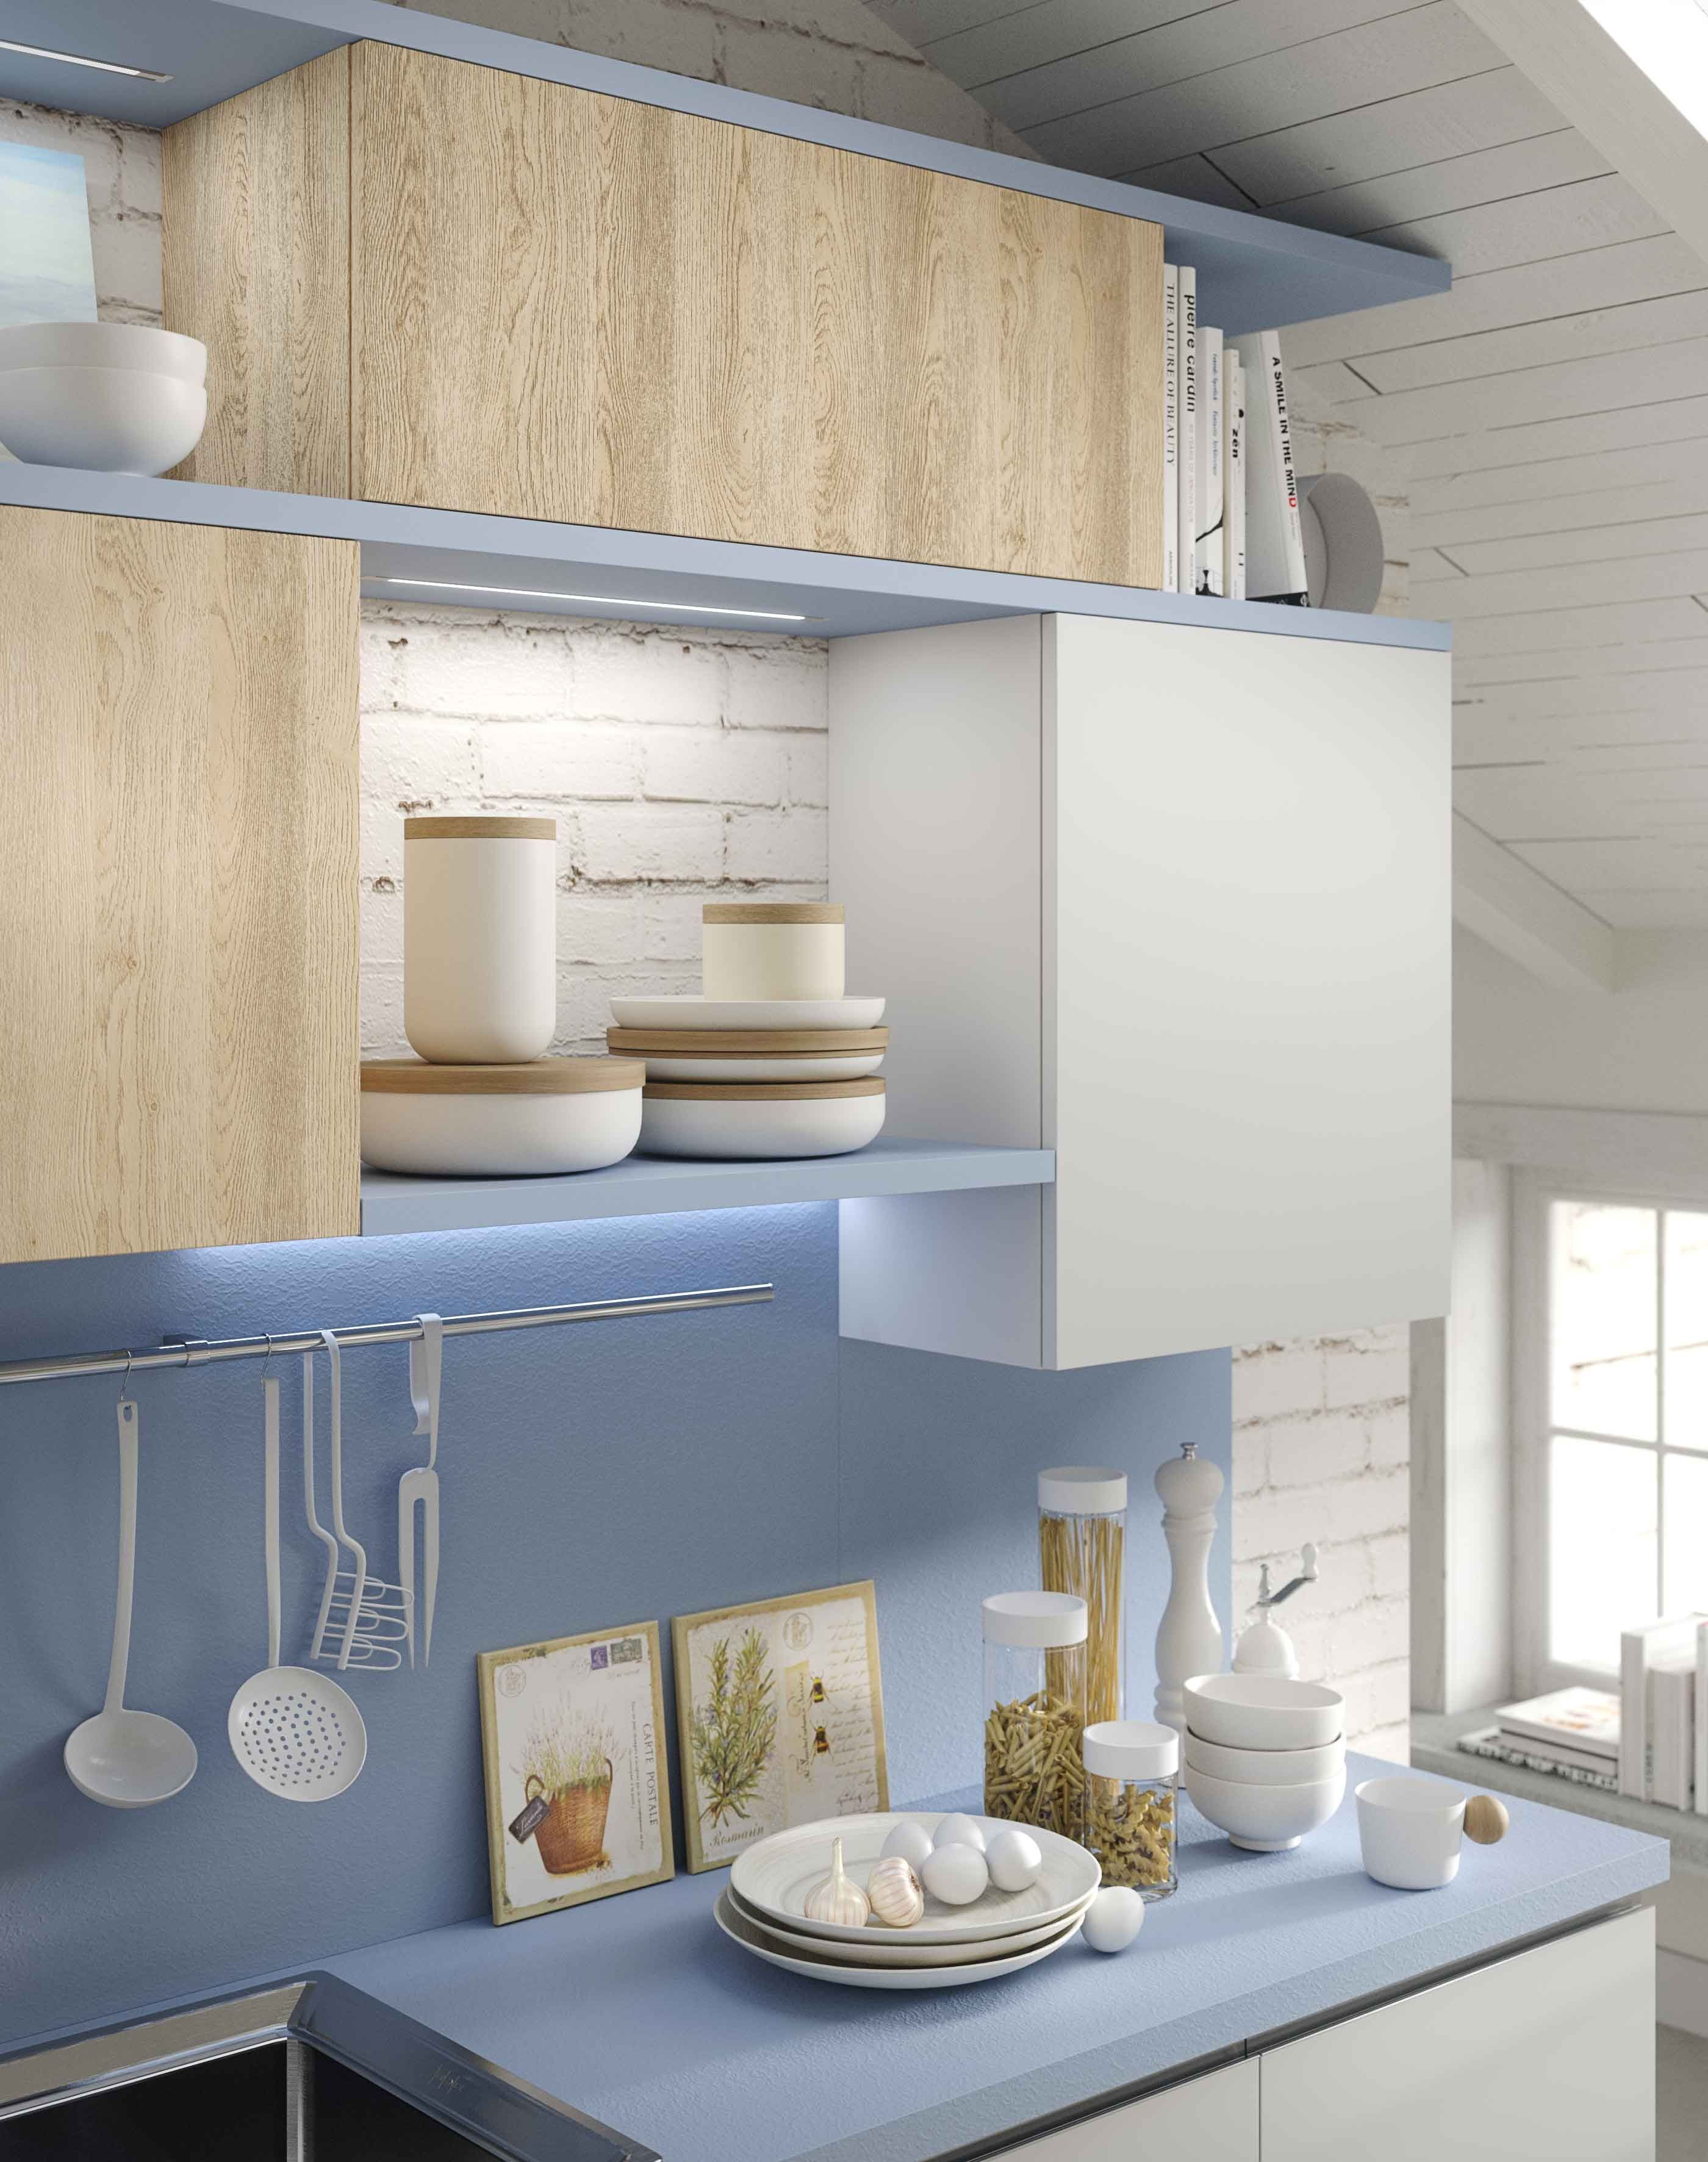 Kitchen Up available with doors in Nature oak melamine and Arctic white lacquer…